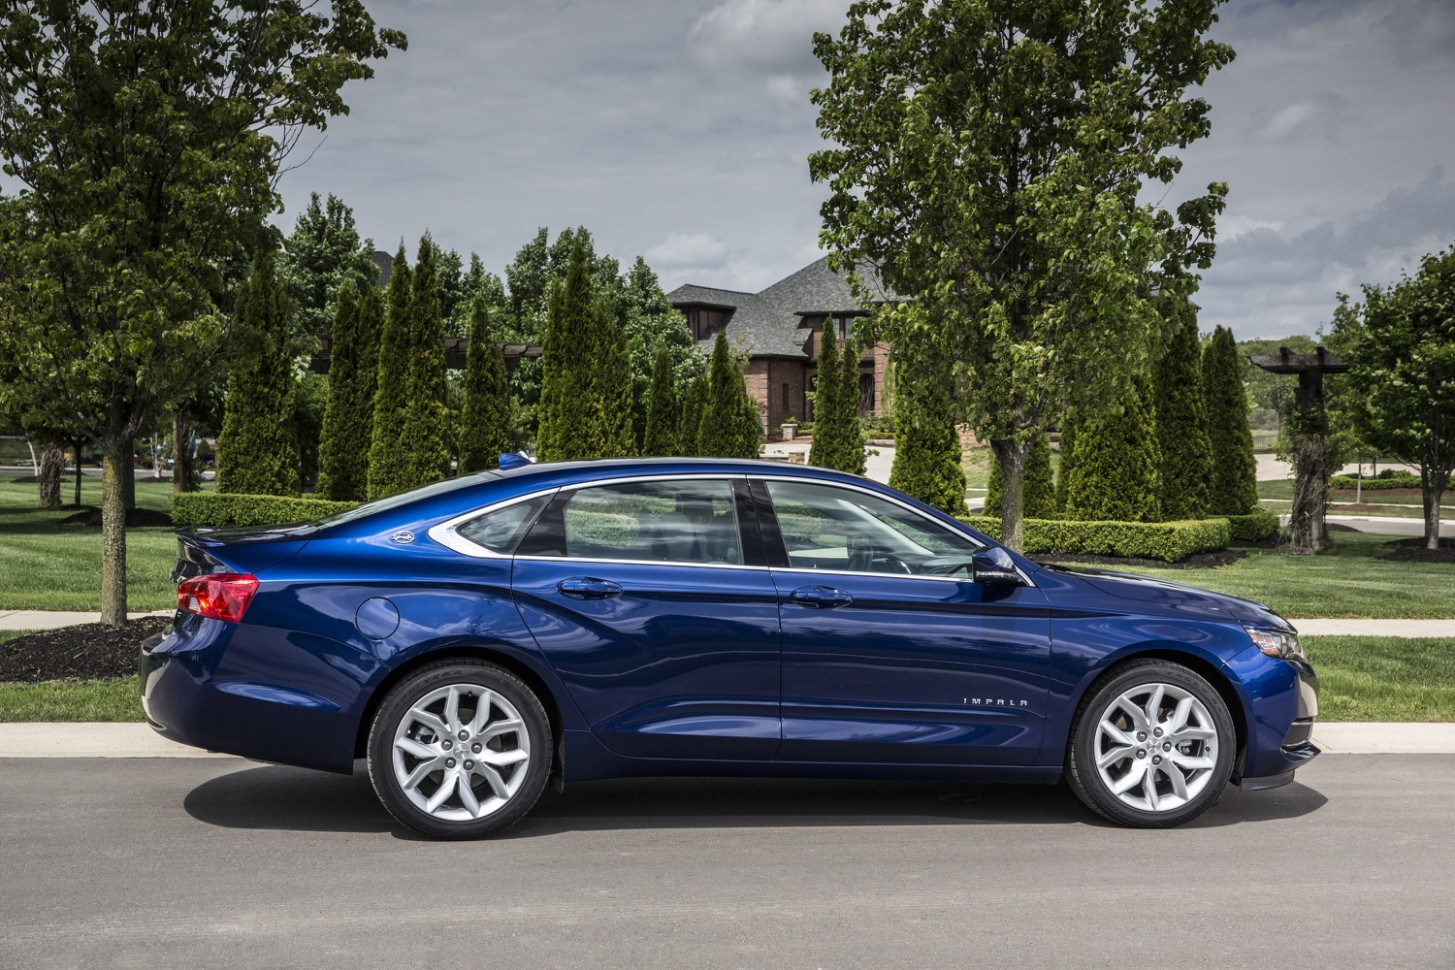 Chevrolet Impala Discount Totals $8,8 In April 8080 | GM Authority